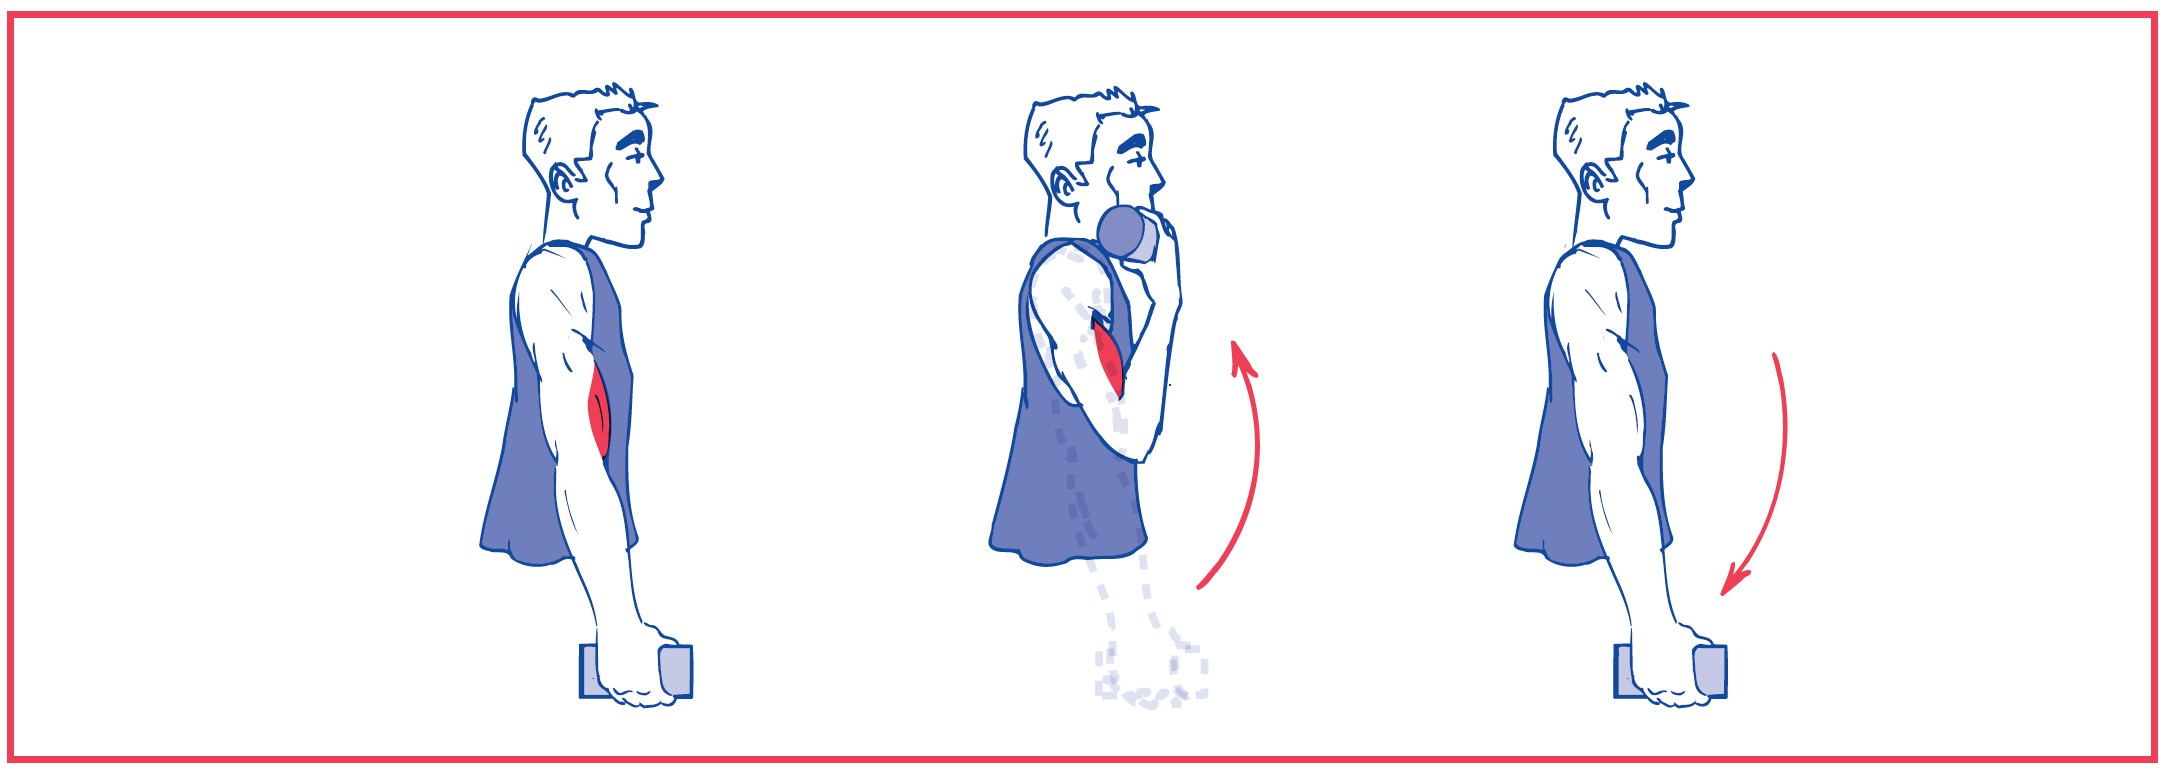 3. Elbow flexion with resistance (weights)